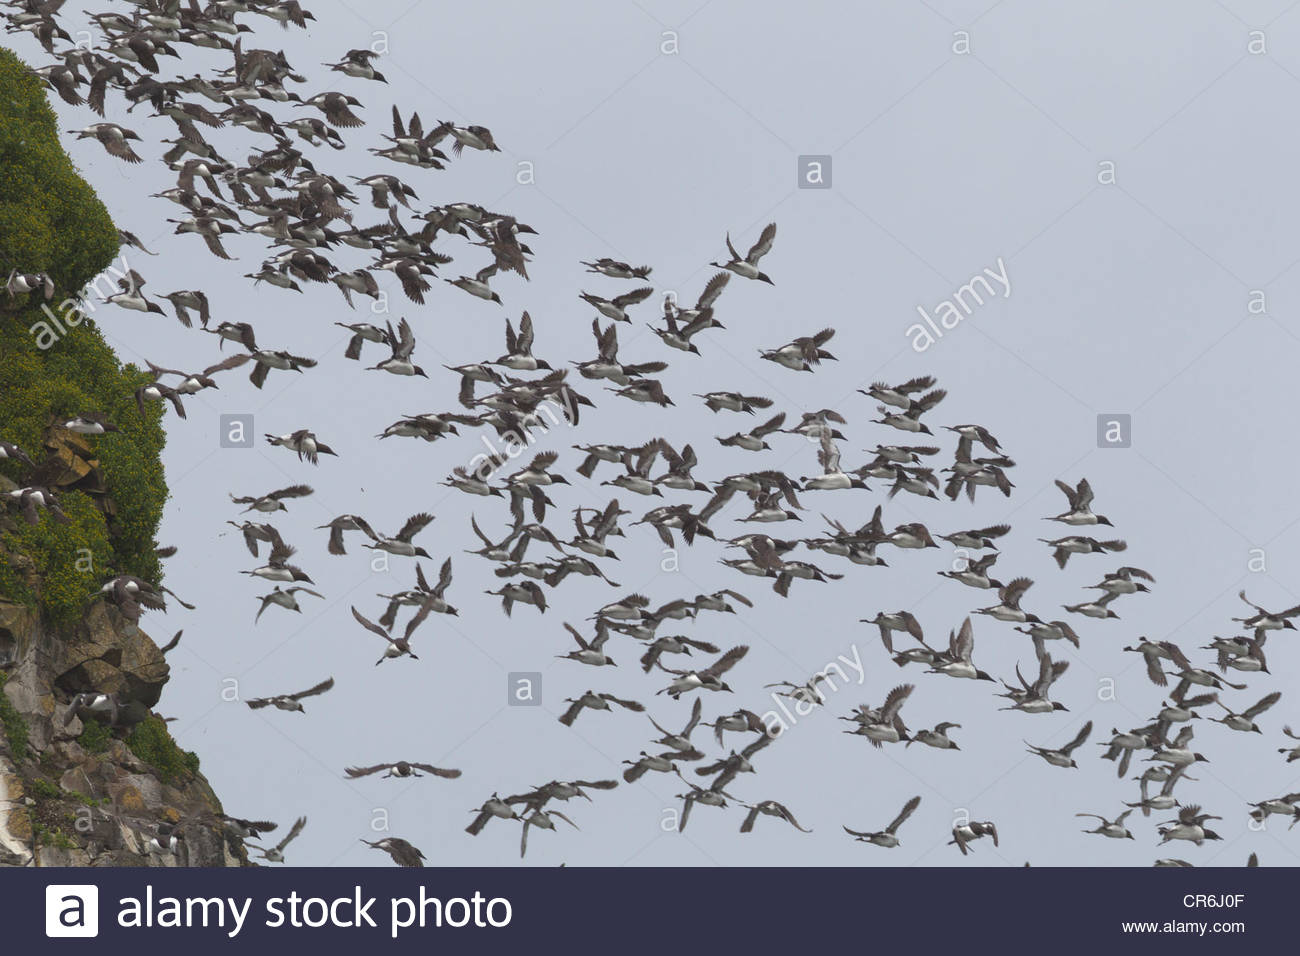 A large flock of Common Murres (Uria aalge), also known as Common Guillemots, dives off Chapman Point near Cannon Stock Photo